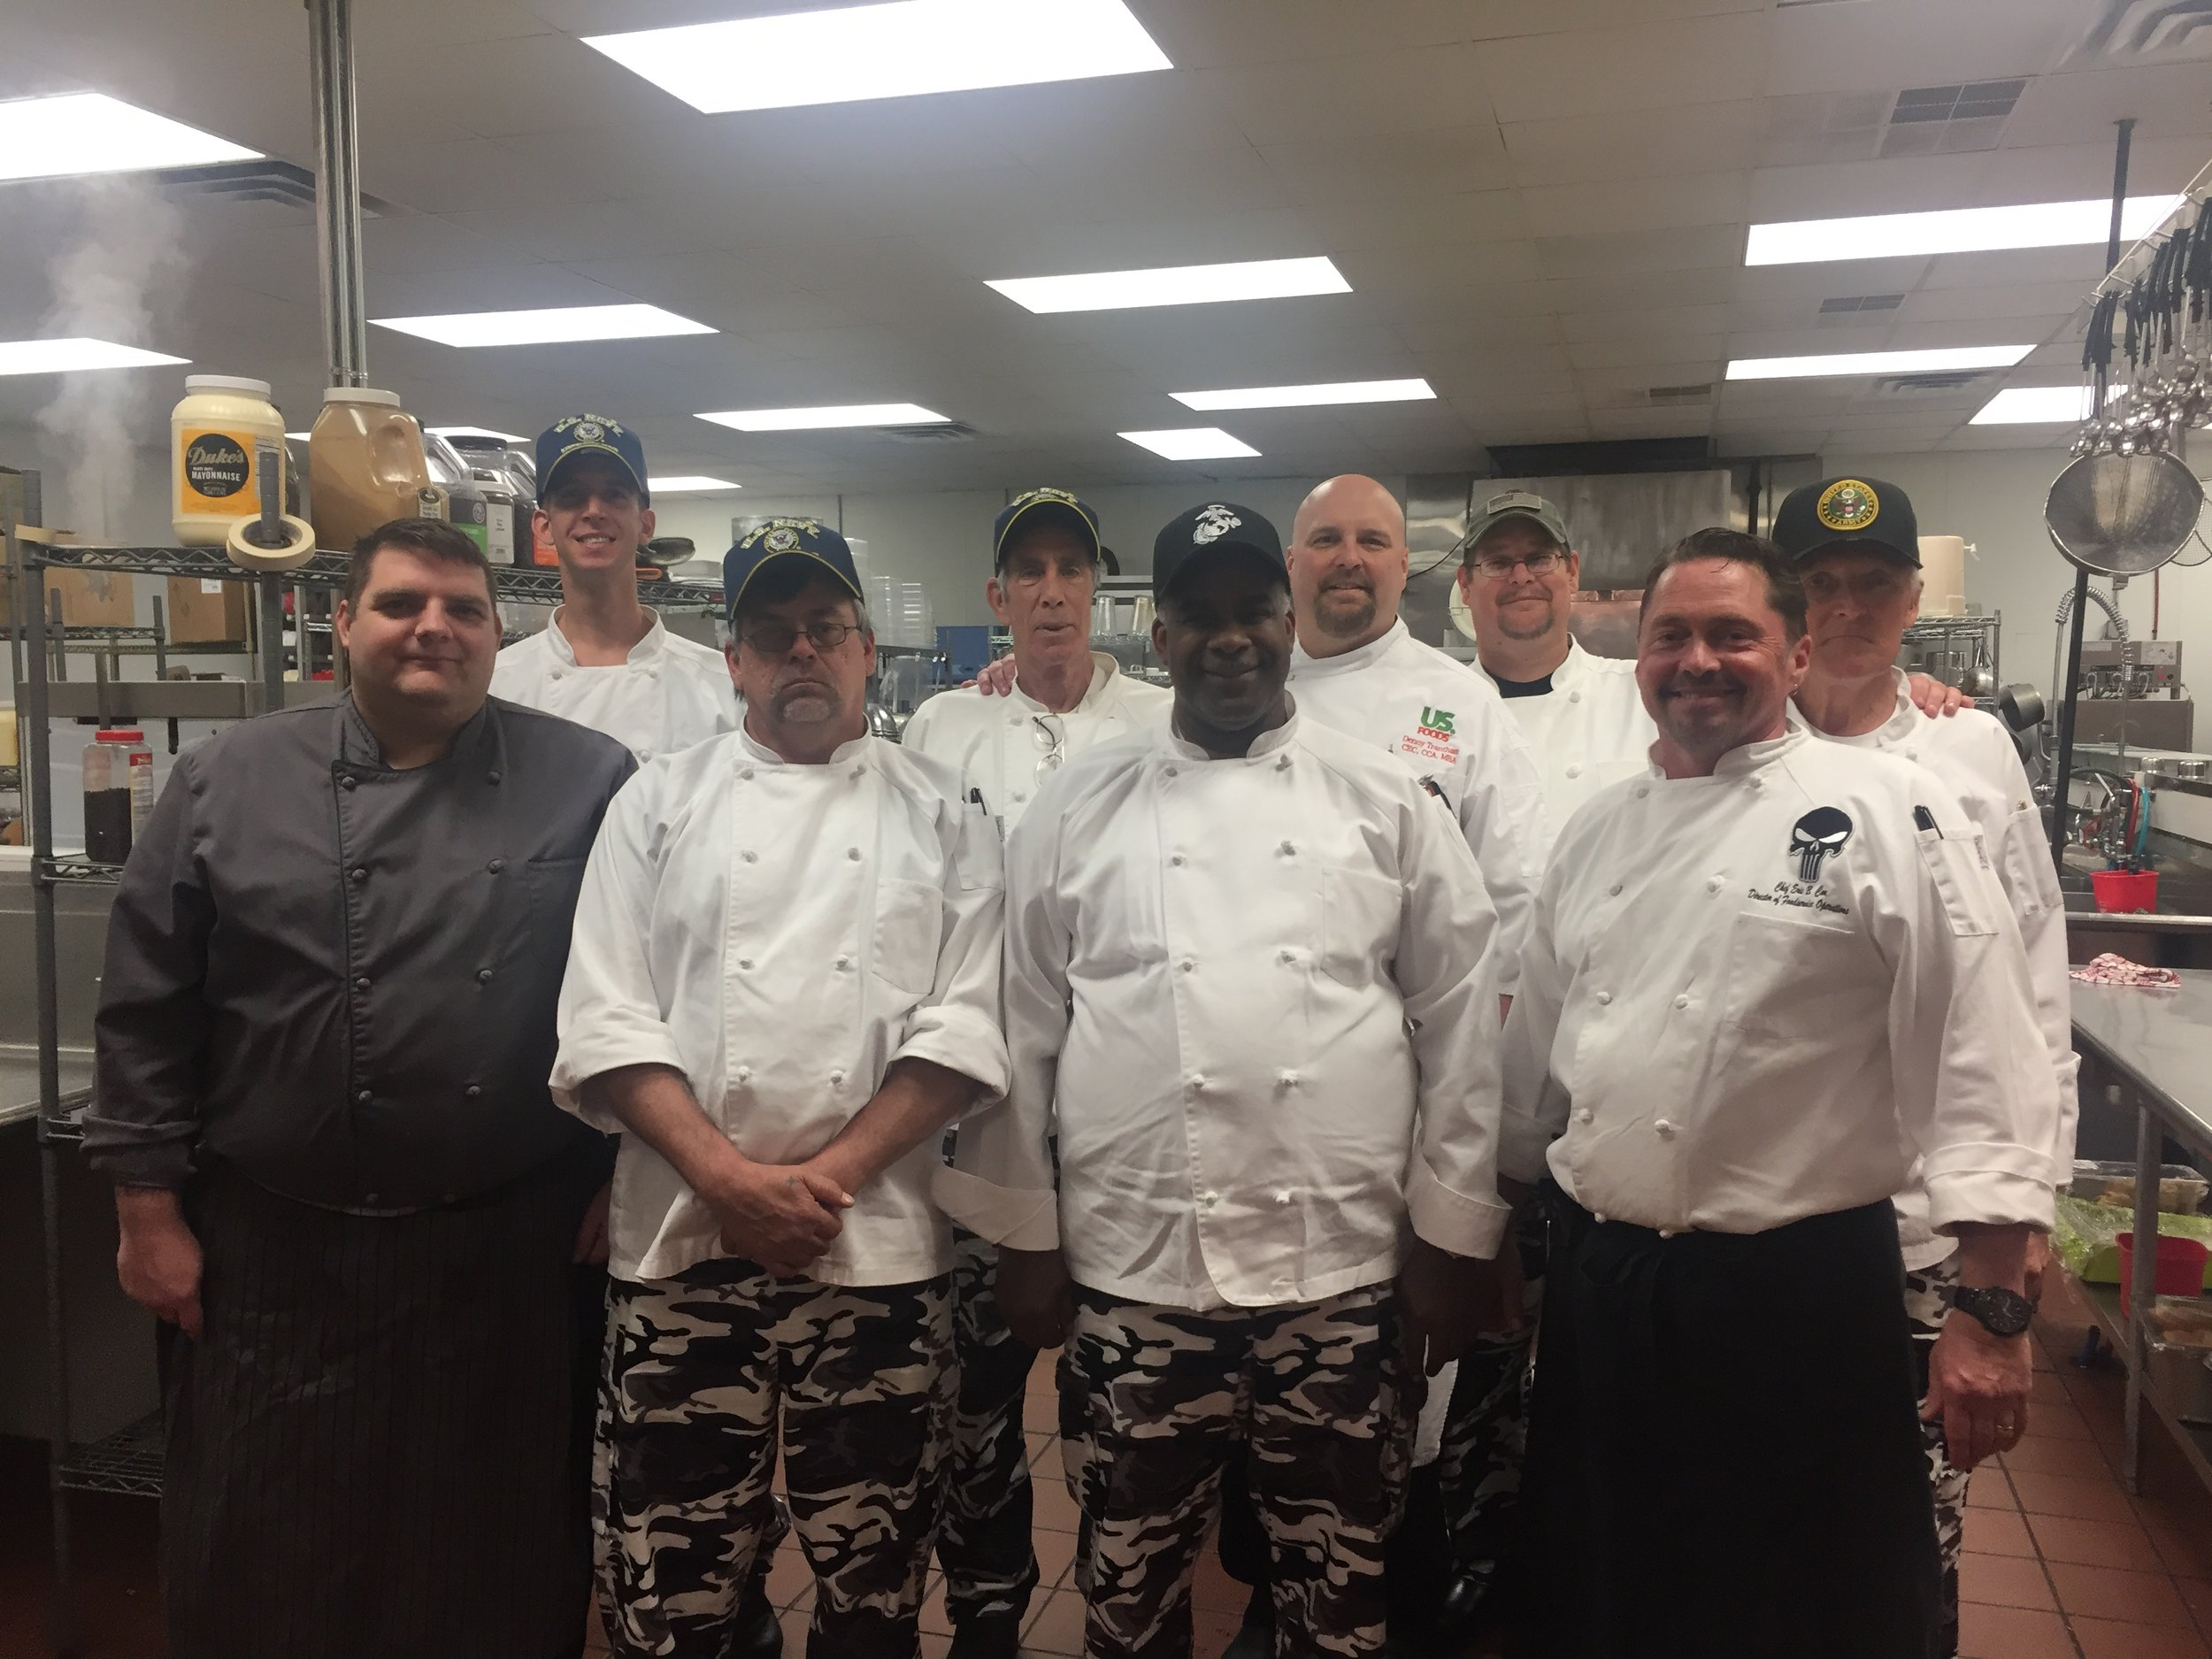 Group photo with Chef Eric Cox (bottom right), ABCCM's director of foodservice operations.